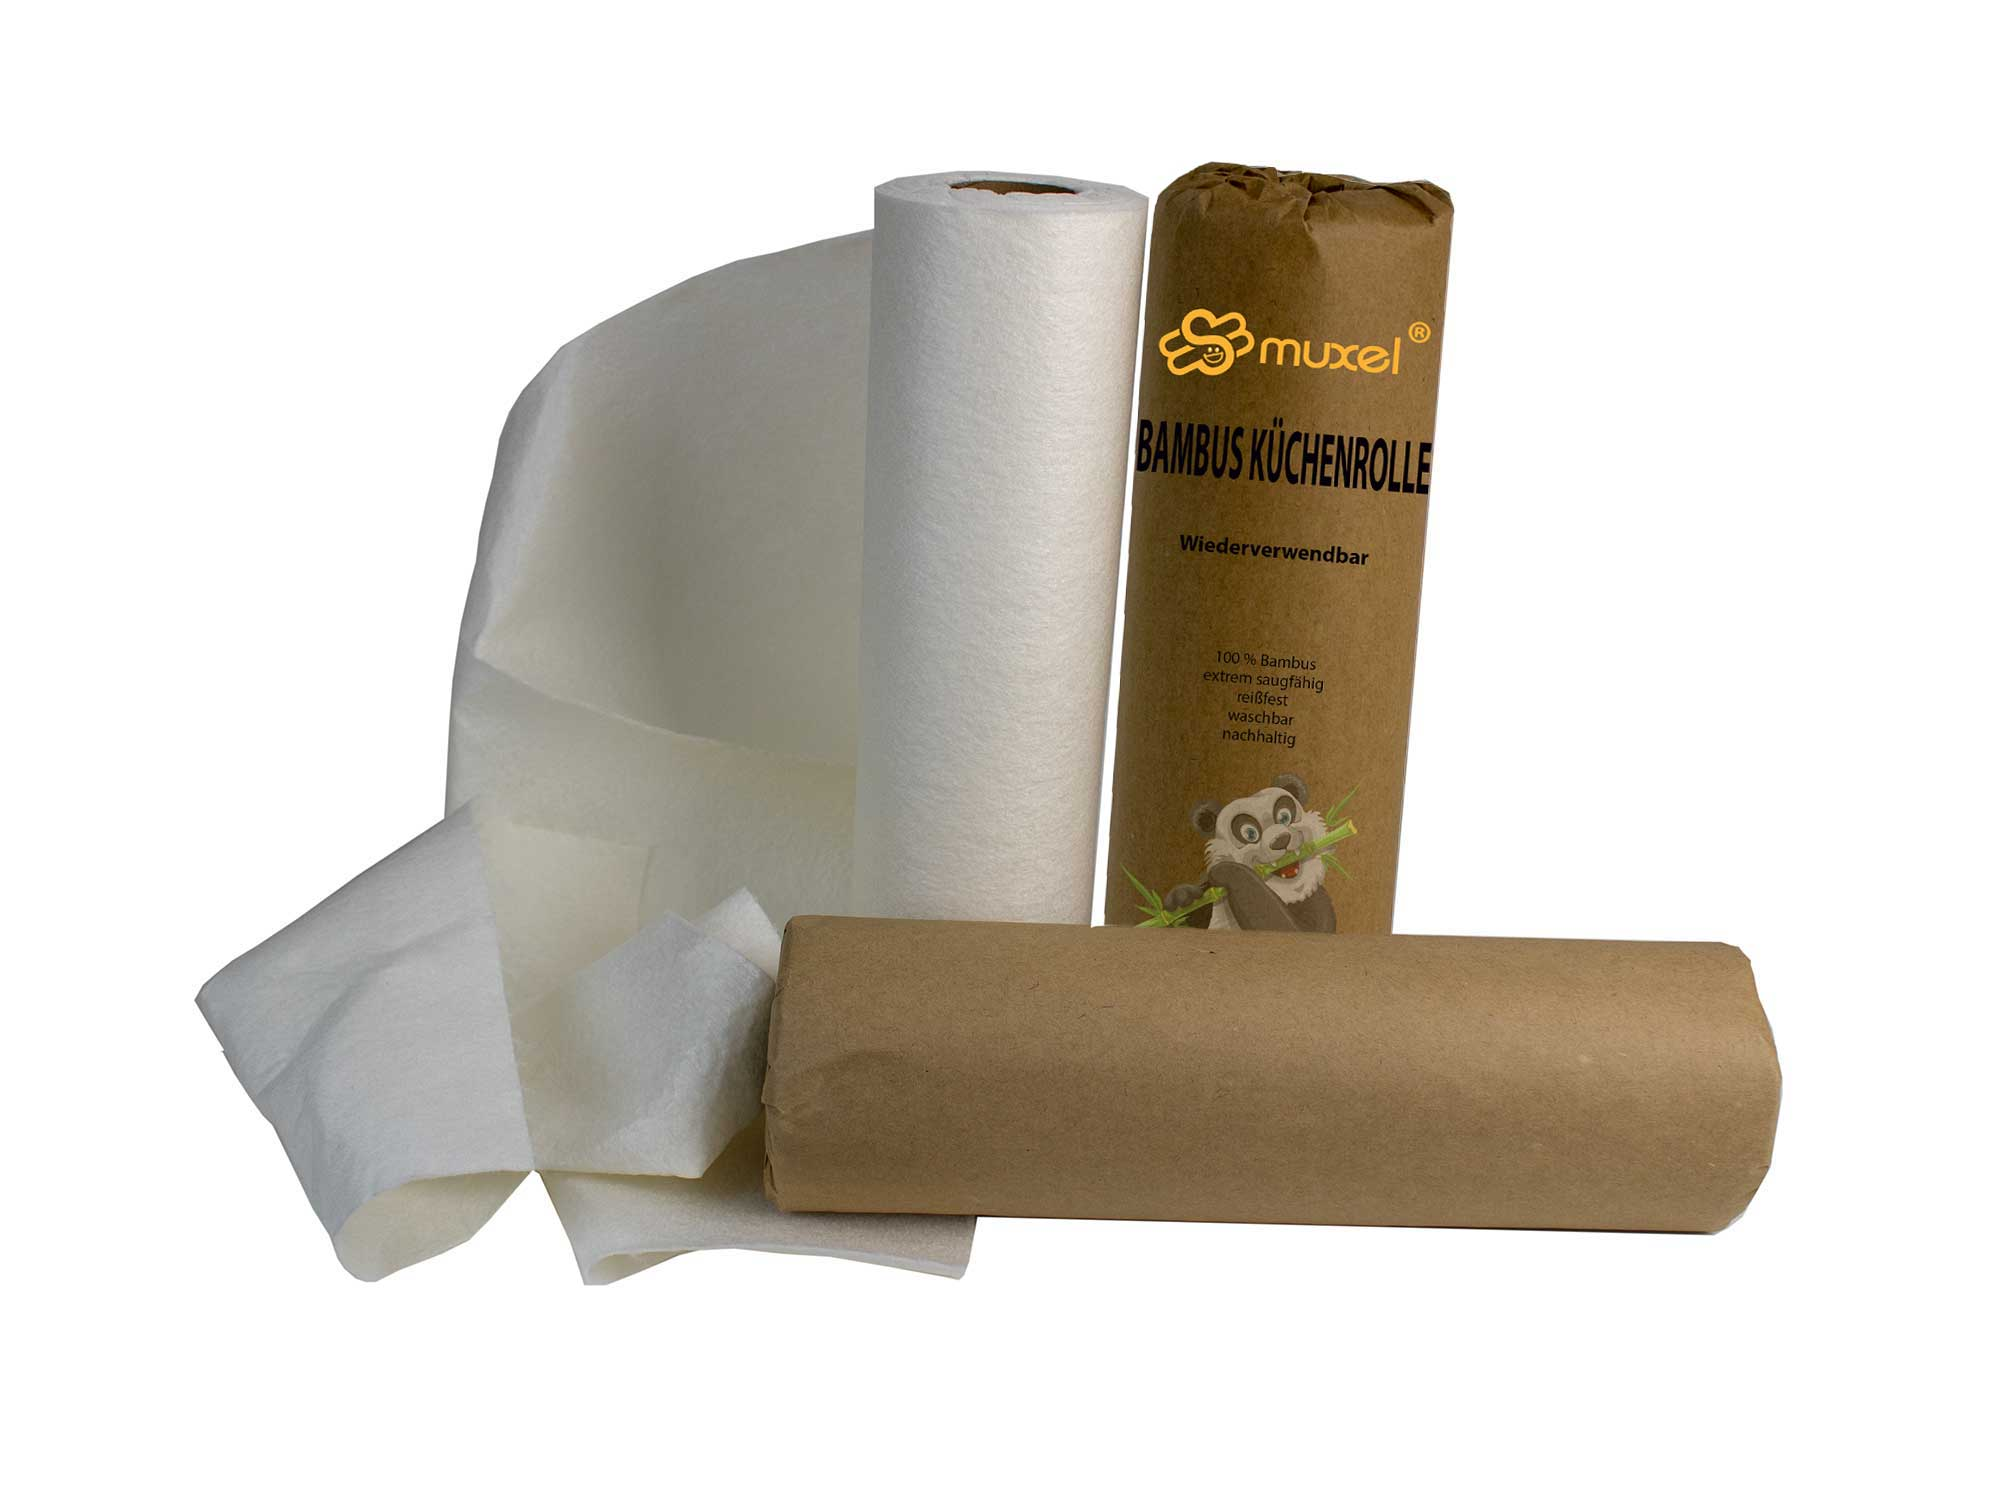 Alternative Küchenrolle Kitchen Roll Made Of Bamboo Environmentally Friendly Alternative To Household Roll Of Paper